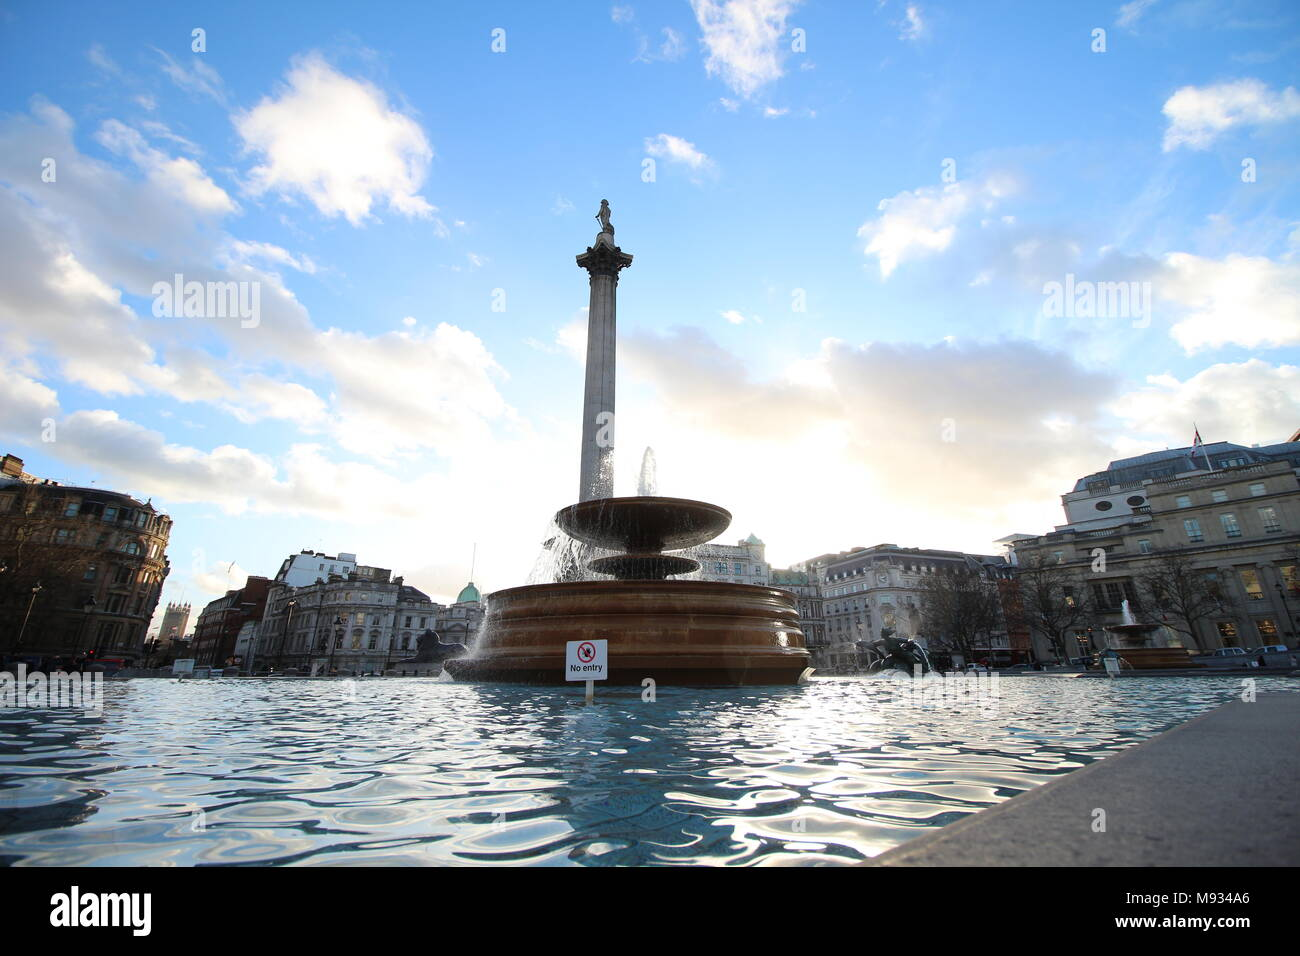 A fountain in Trafalgar square, London, England - Stock Image